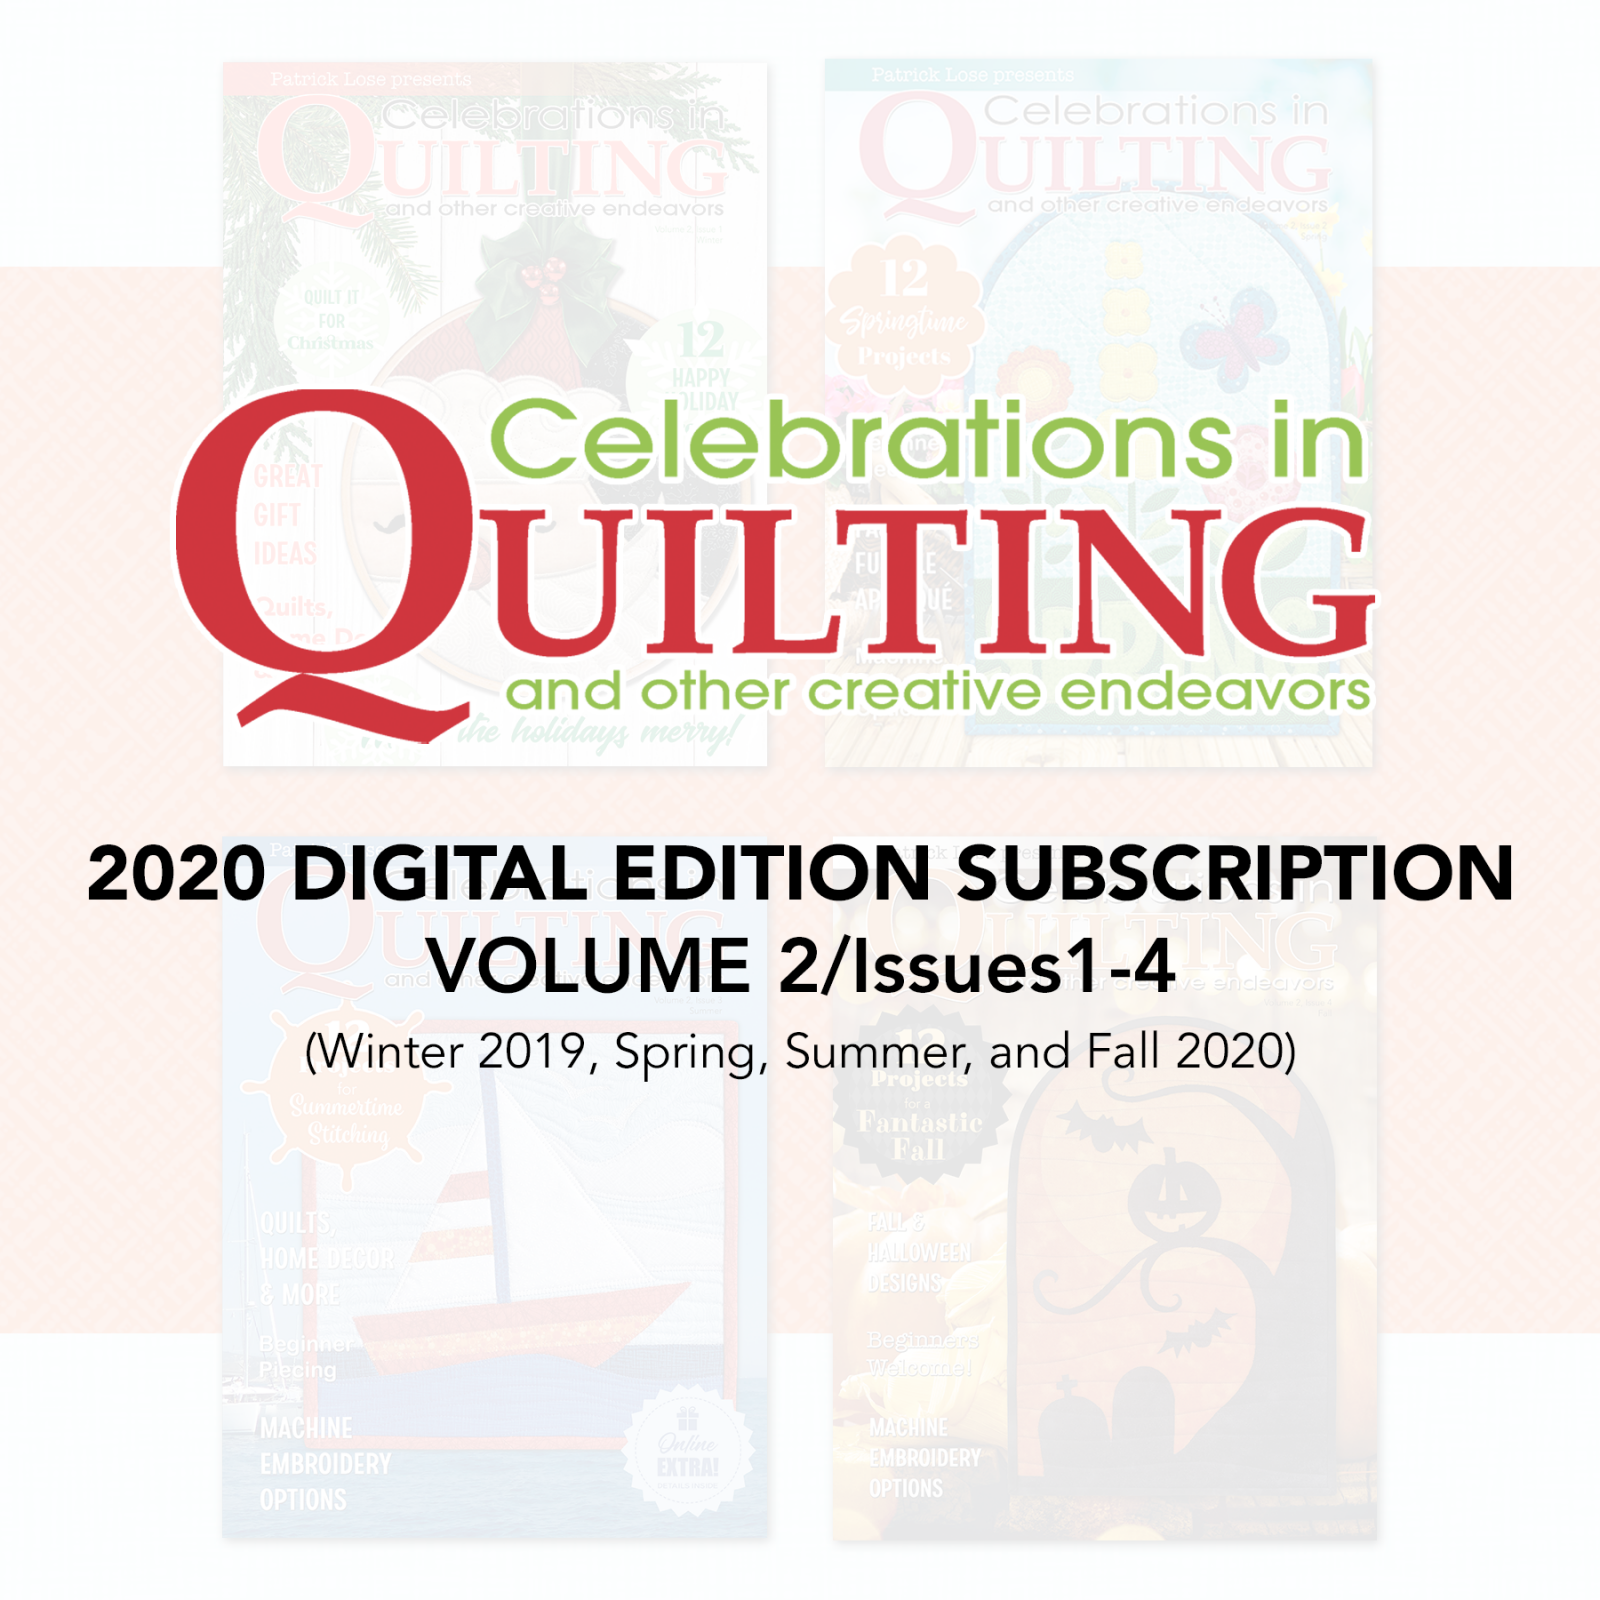 Celebrations in Quilting Volume 2 DIGITAL Subscription